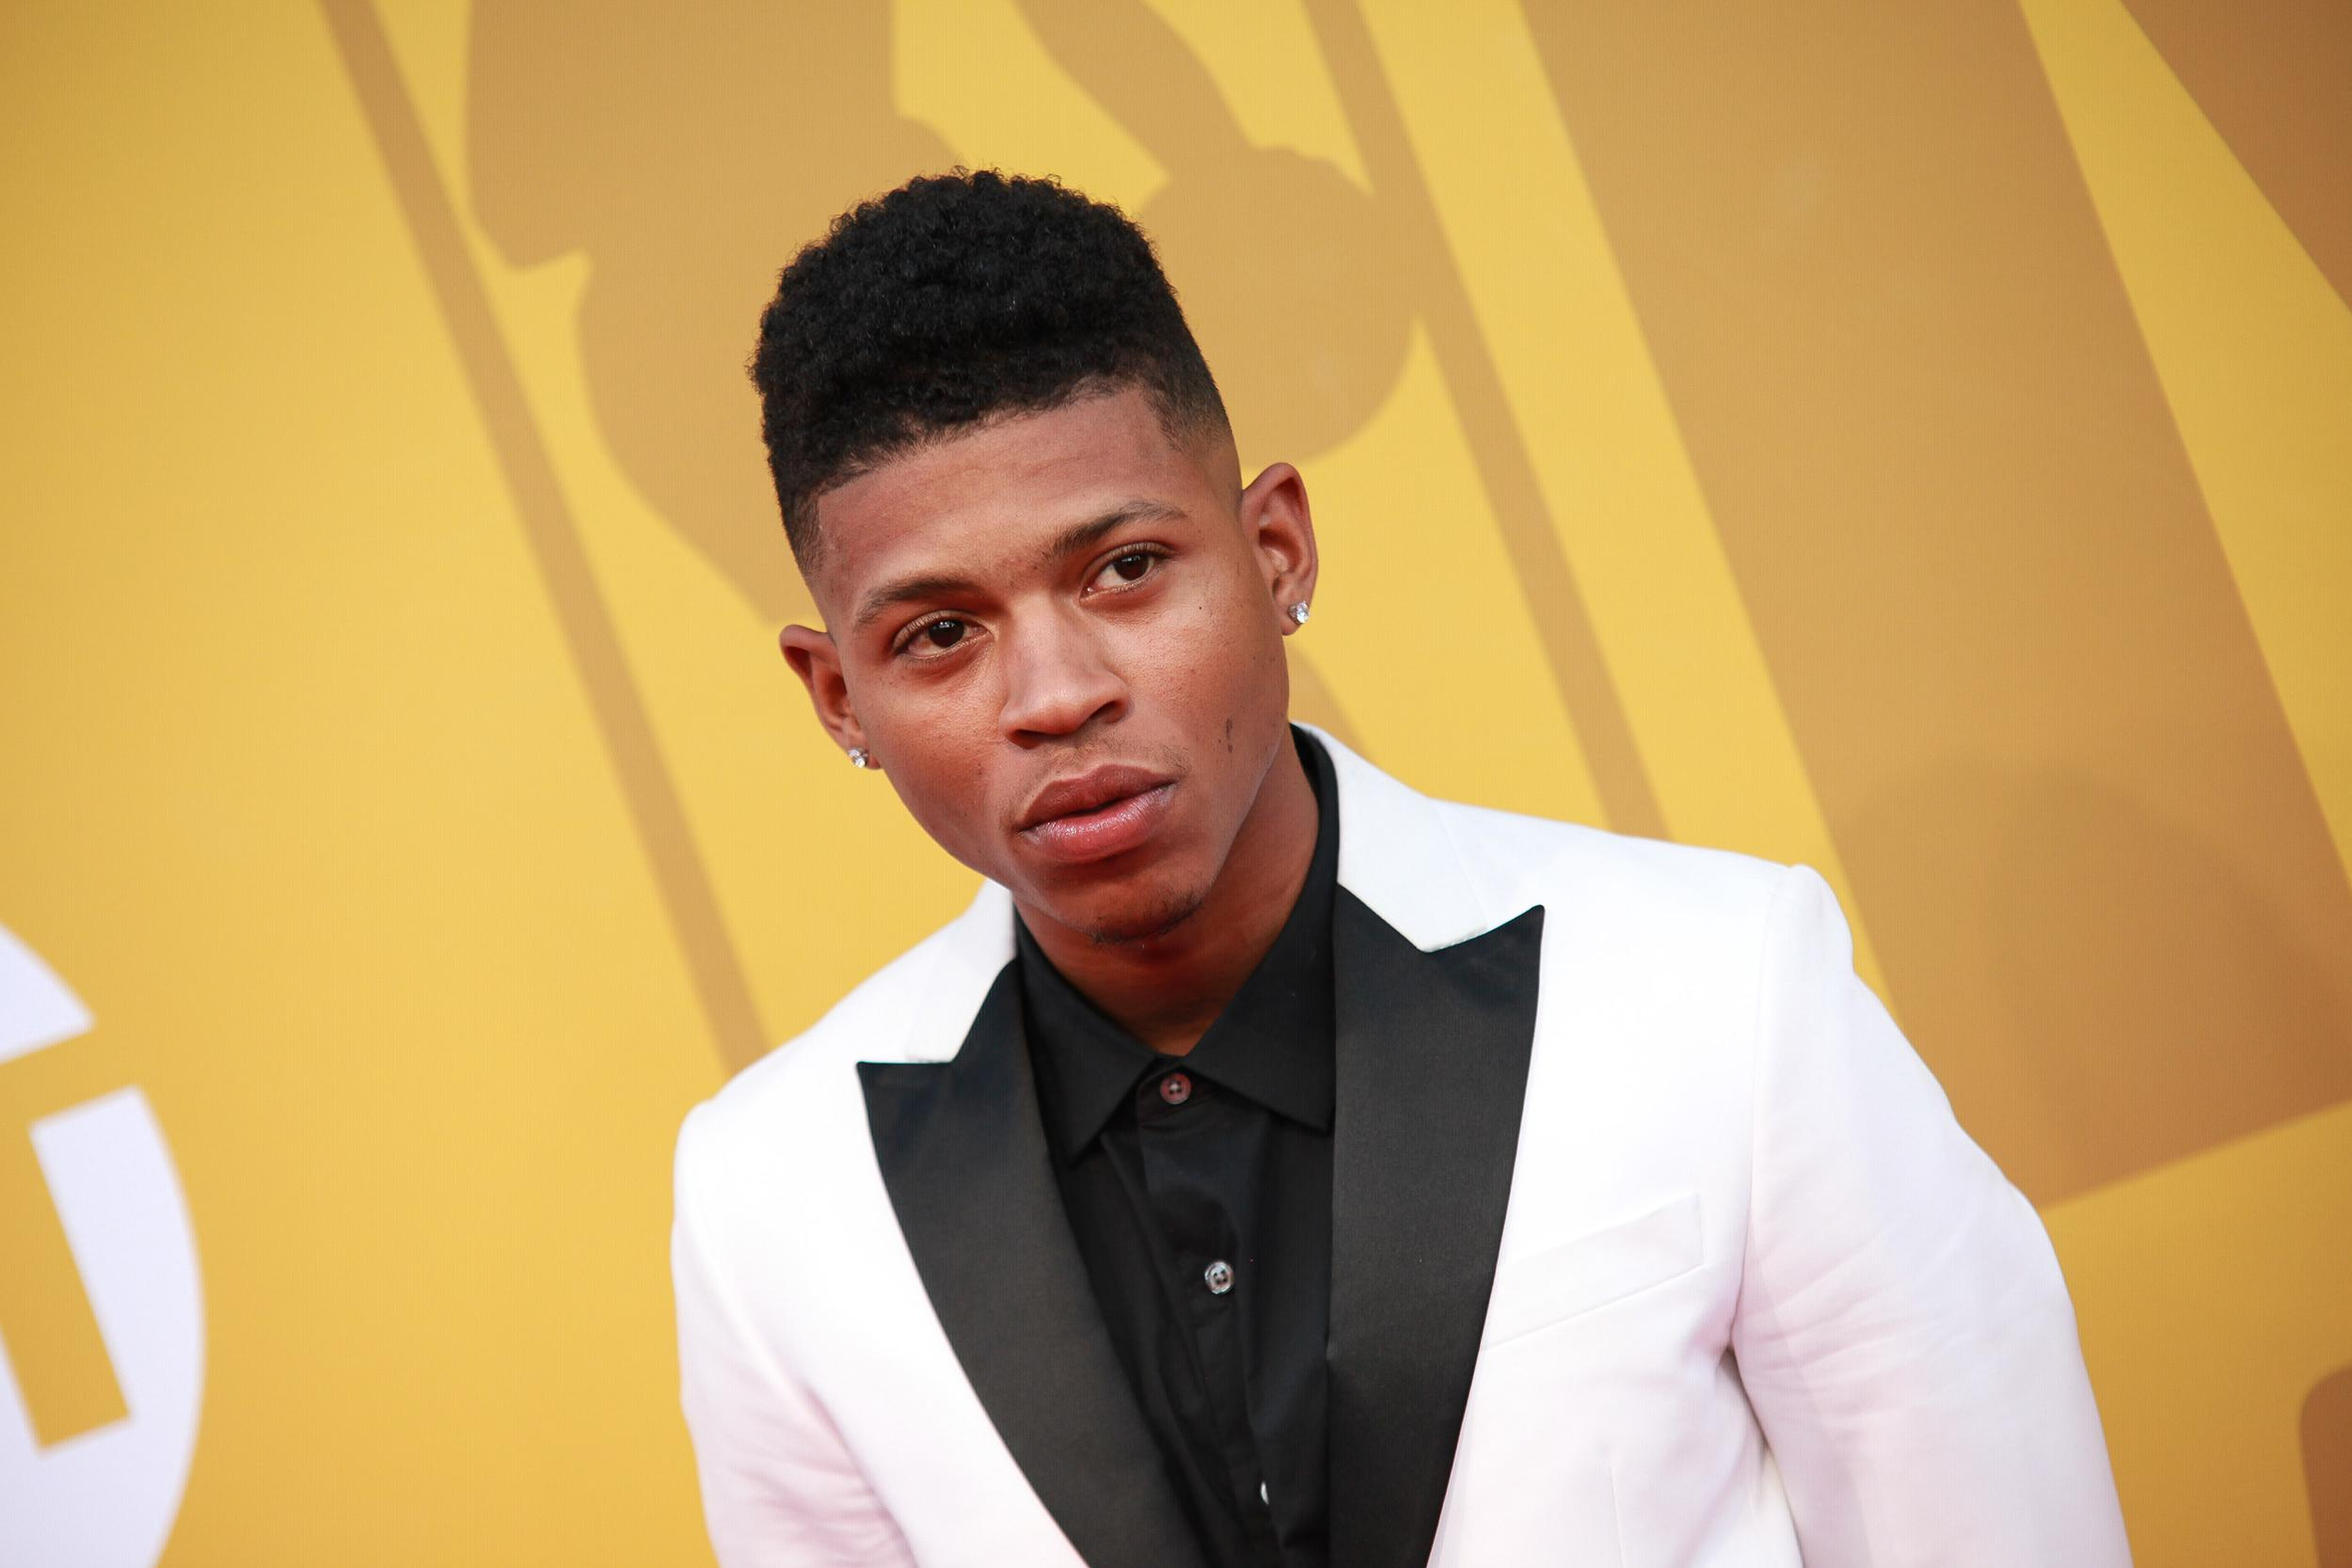 'Empire' actor Bryshere Gray arrested, accused of assaulting his wife